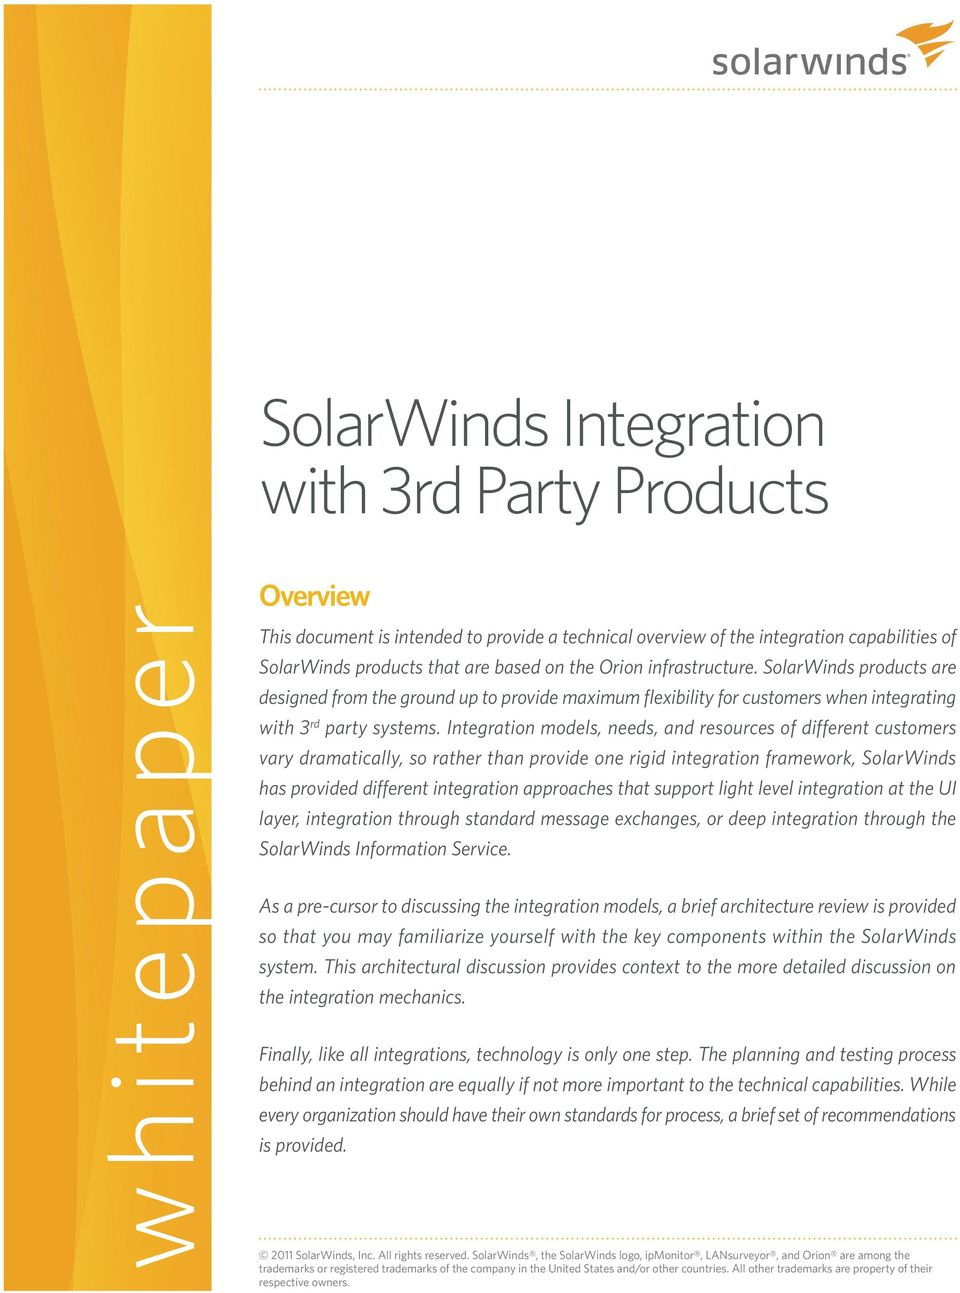 Integration models, needs, and resources of different customers vary dramatically, so rather than provide one rigid integration framework, SolarWinds has provided different integration approaches